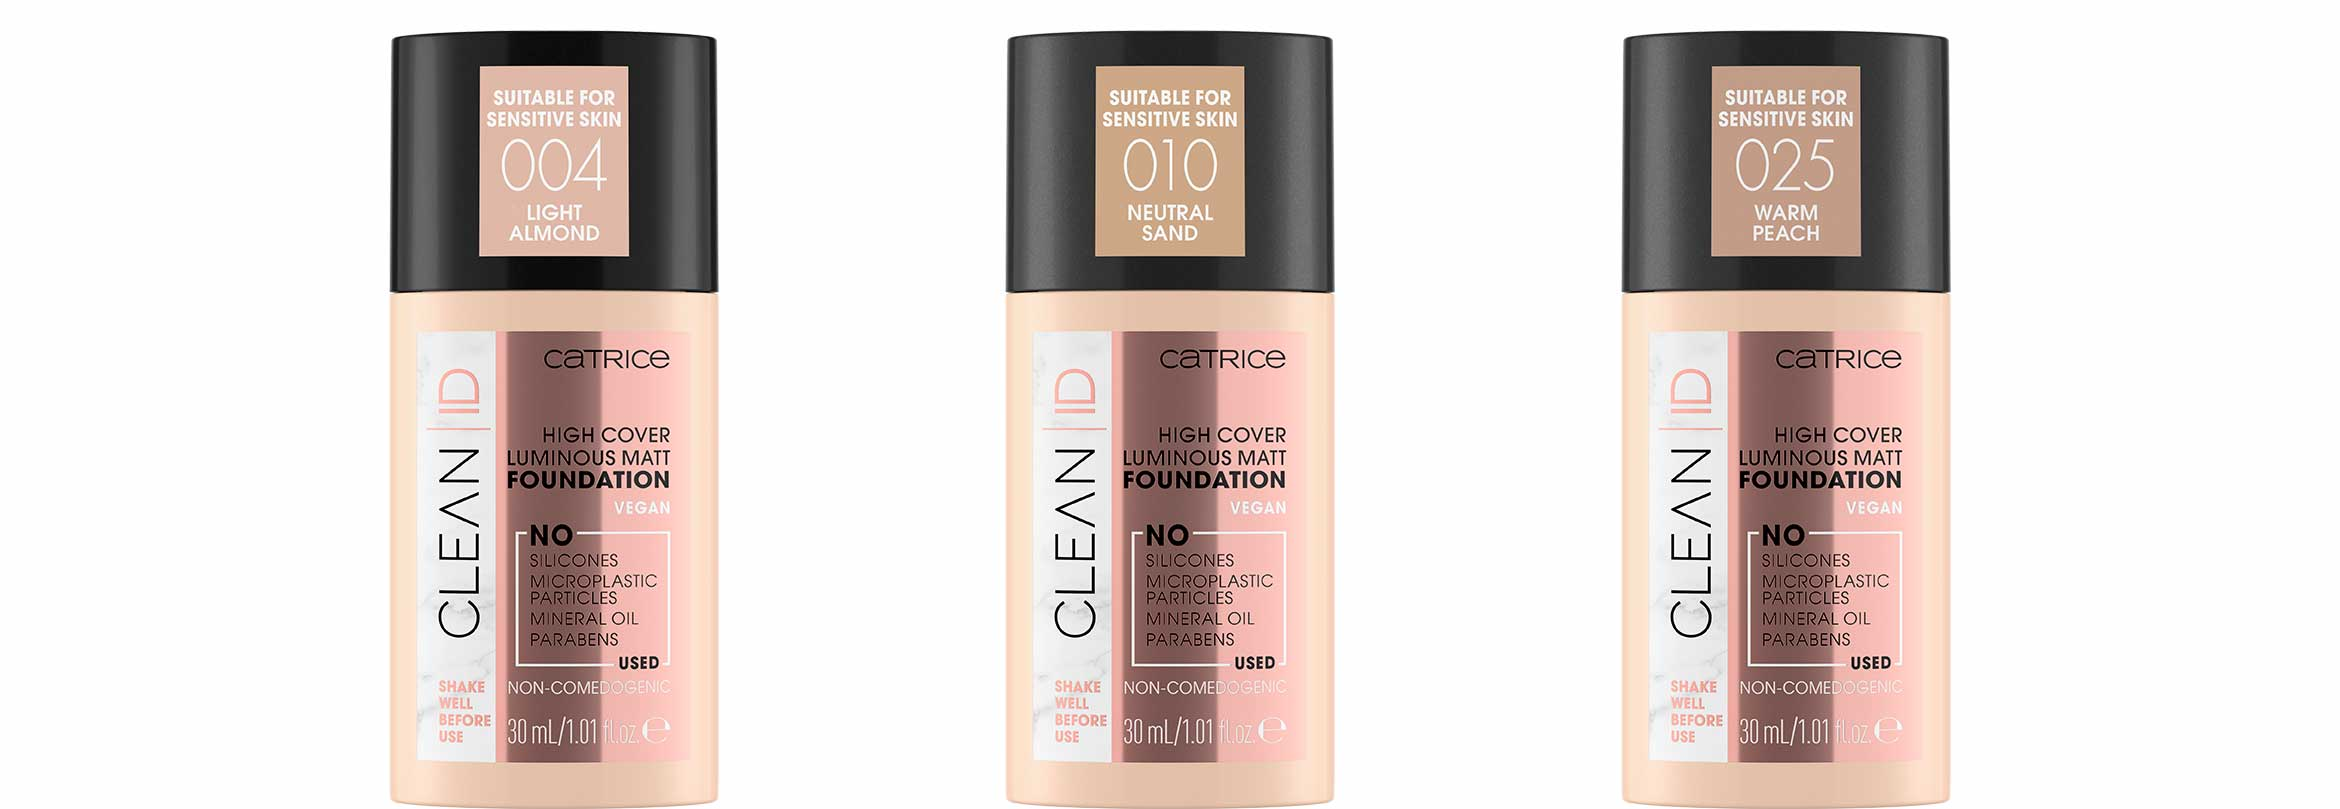 catrice clean id high cover luminous matt foundation